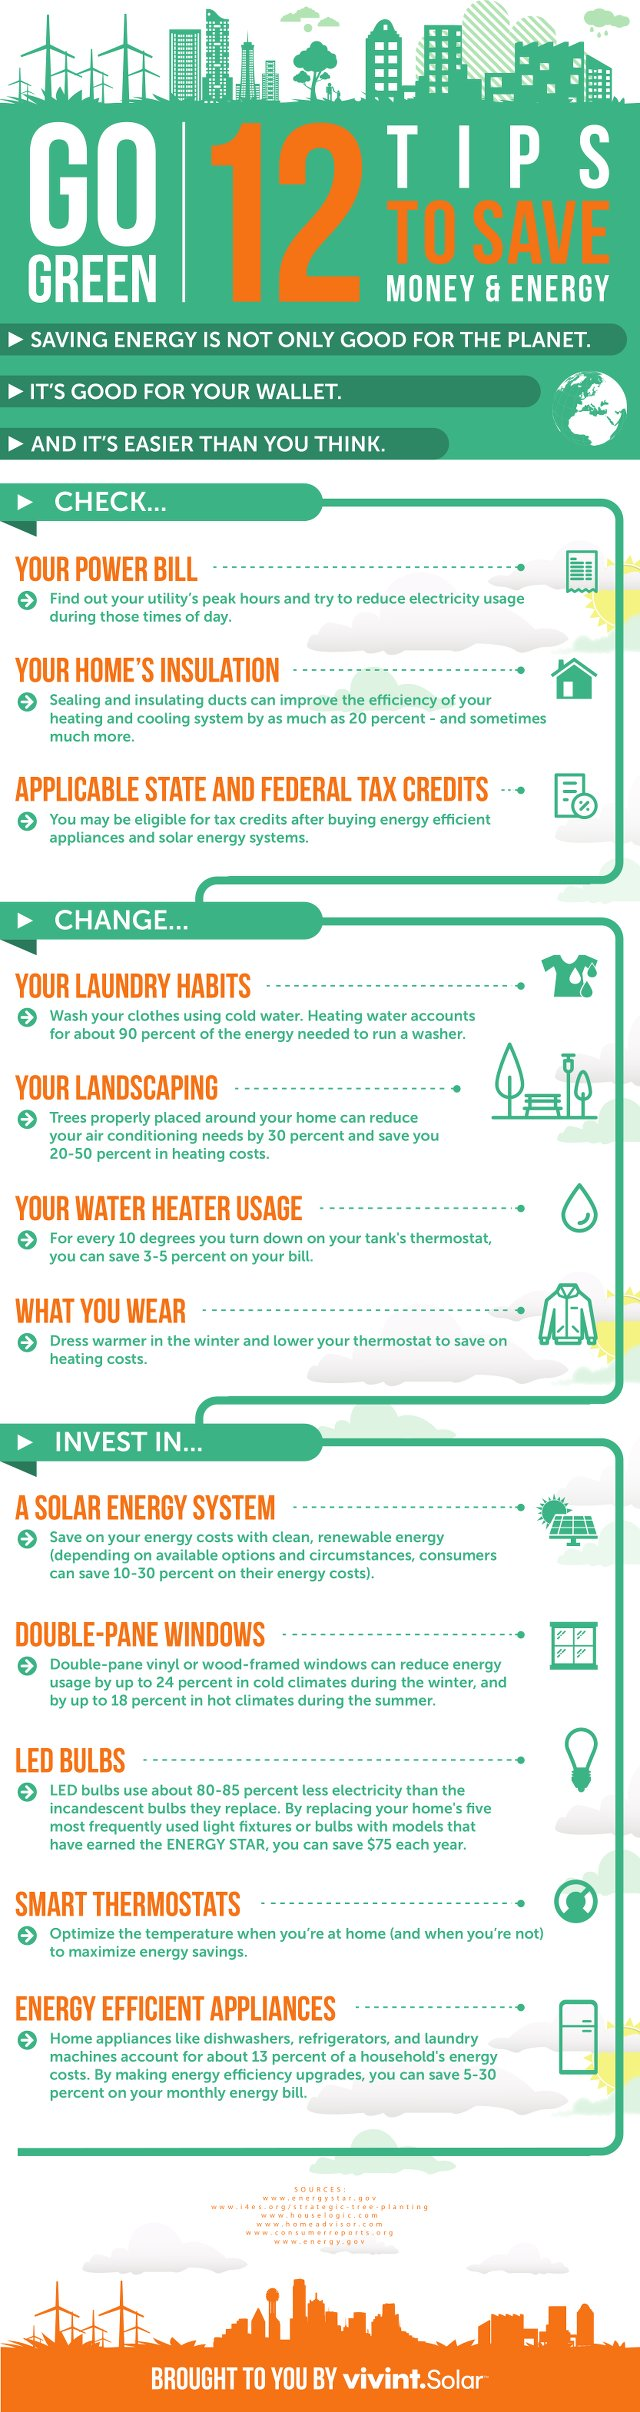 12 steps to save energy and money in your home